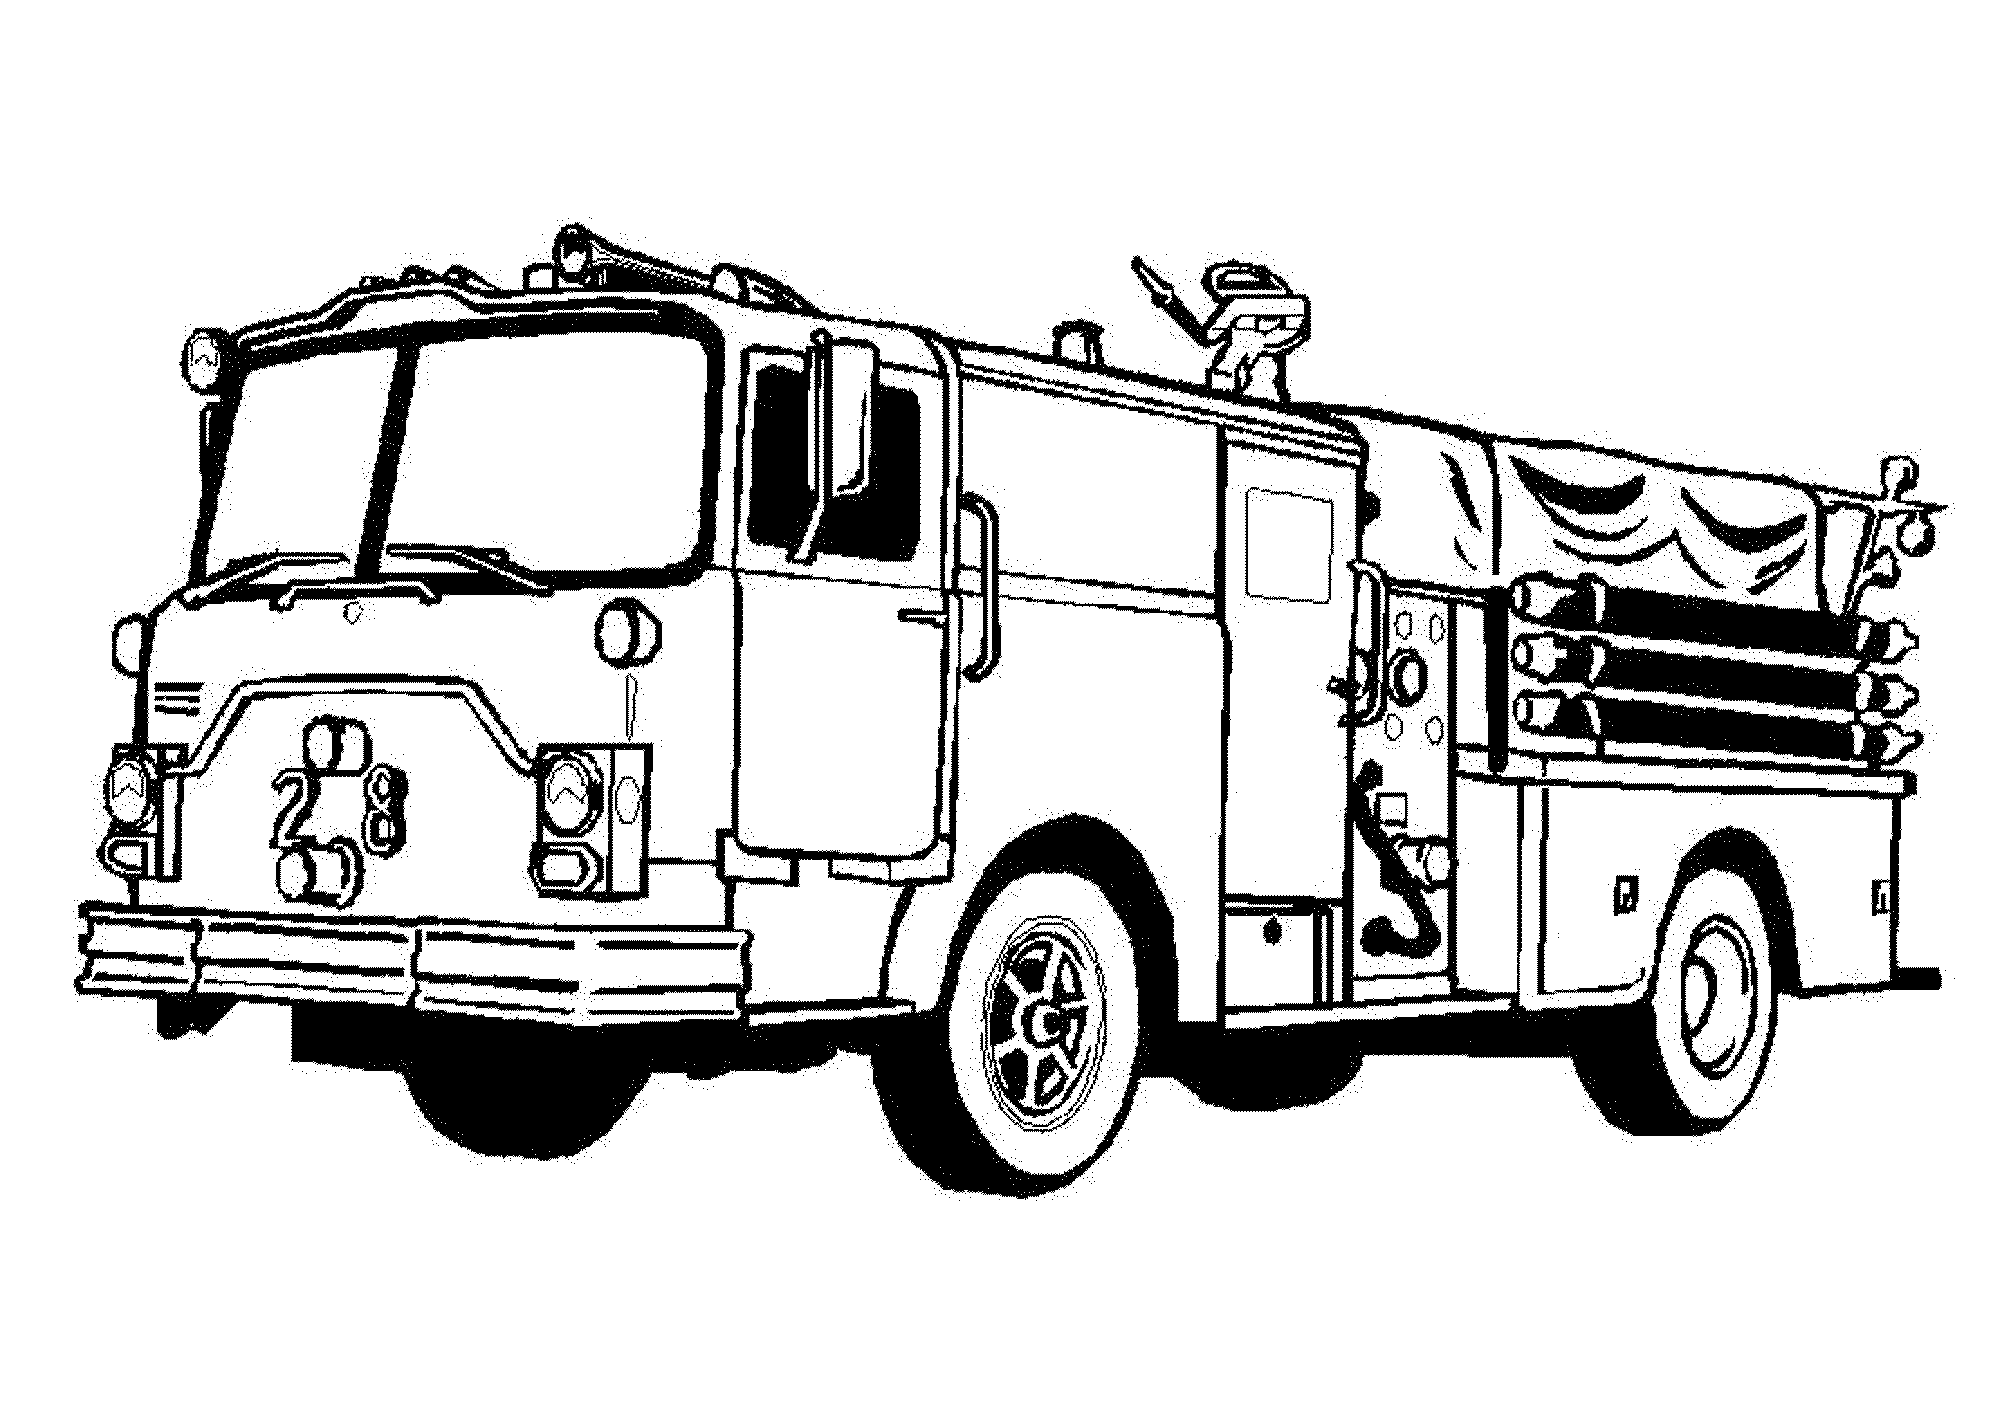 This is an image of Effortless Fire Truck Printable